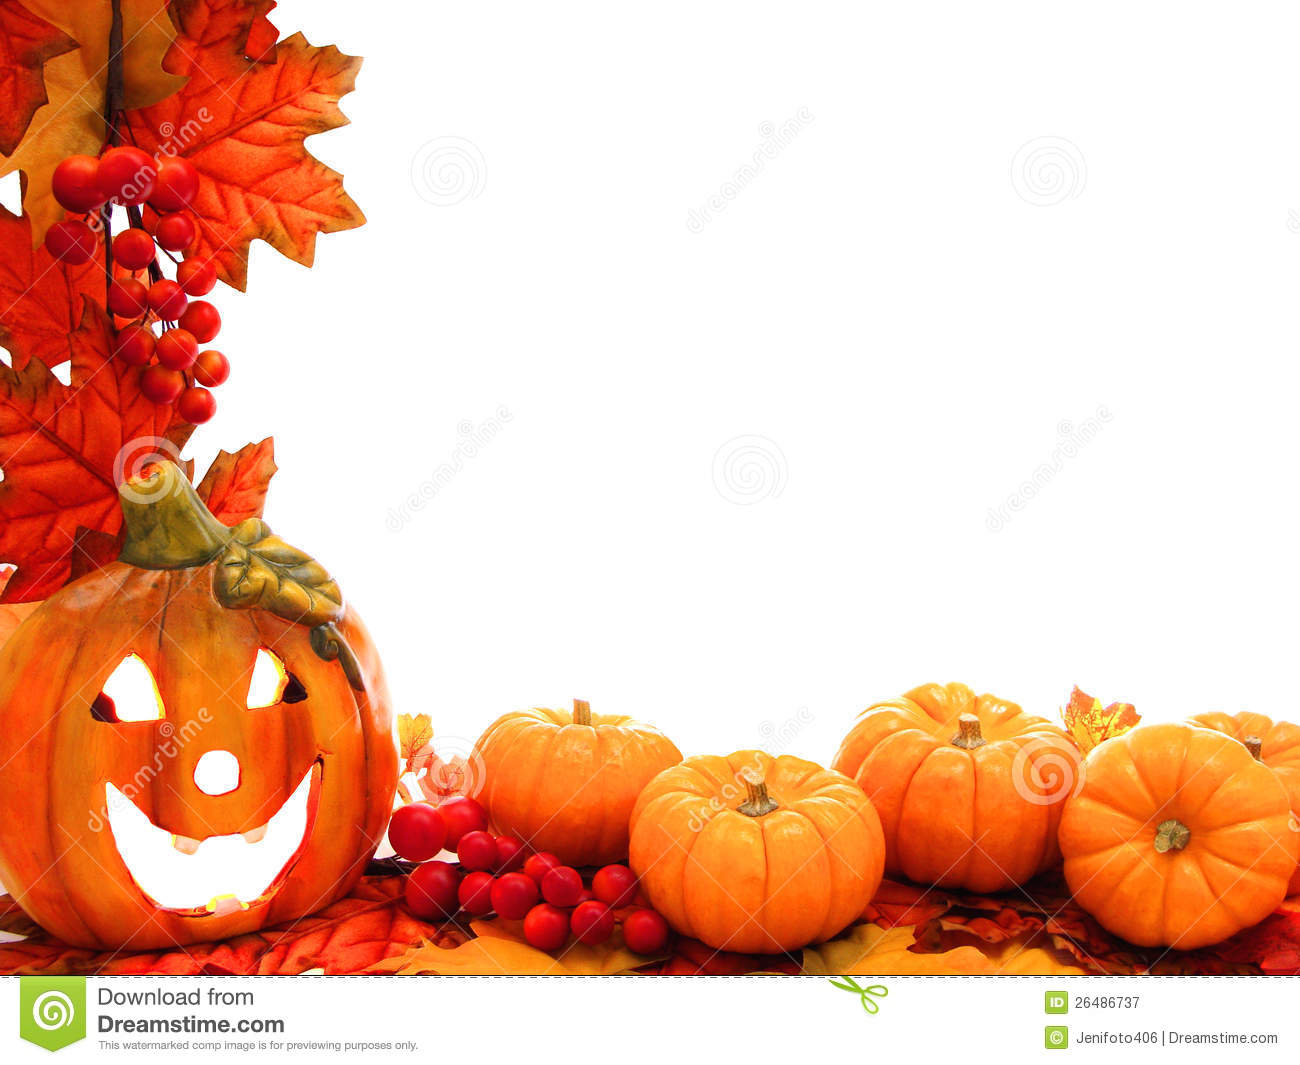 halloween border stock image image of arrangement  gourd clipart borders of crosses clipart borders for teachers